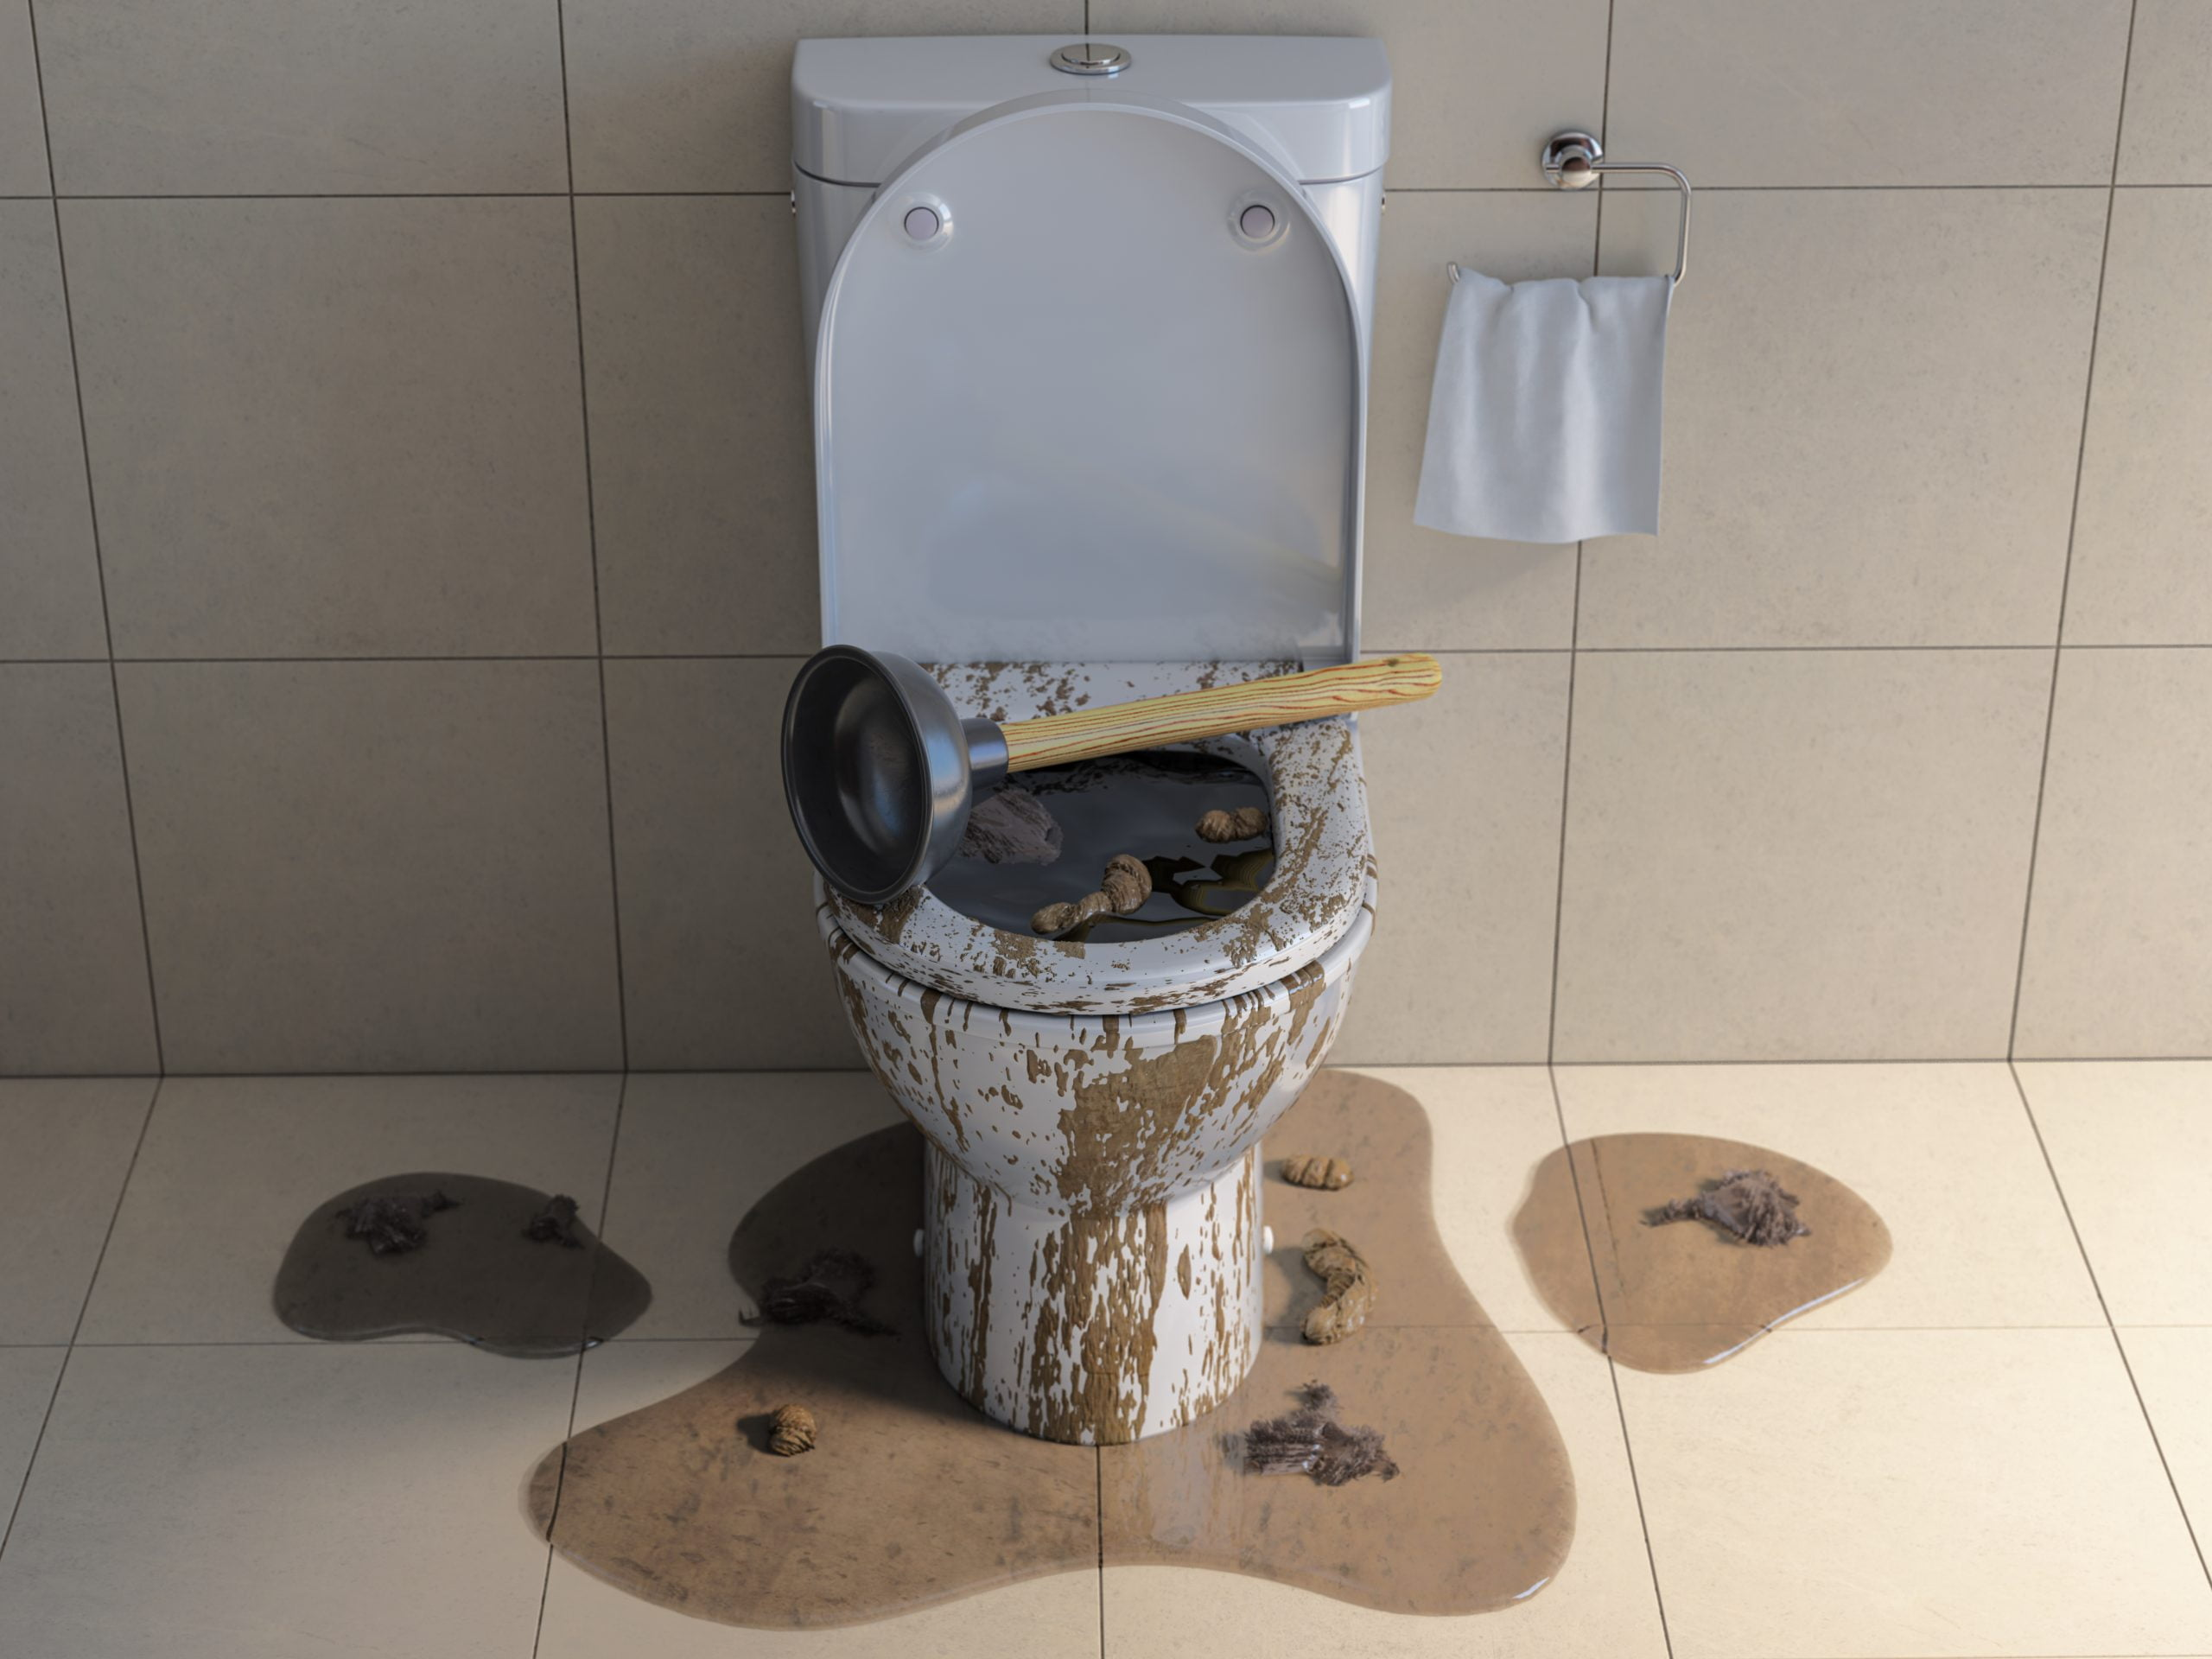 toilet clogged and not drain. Choice Plumbing toilet drain cleaning